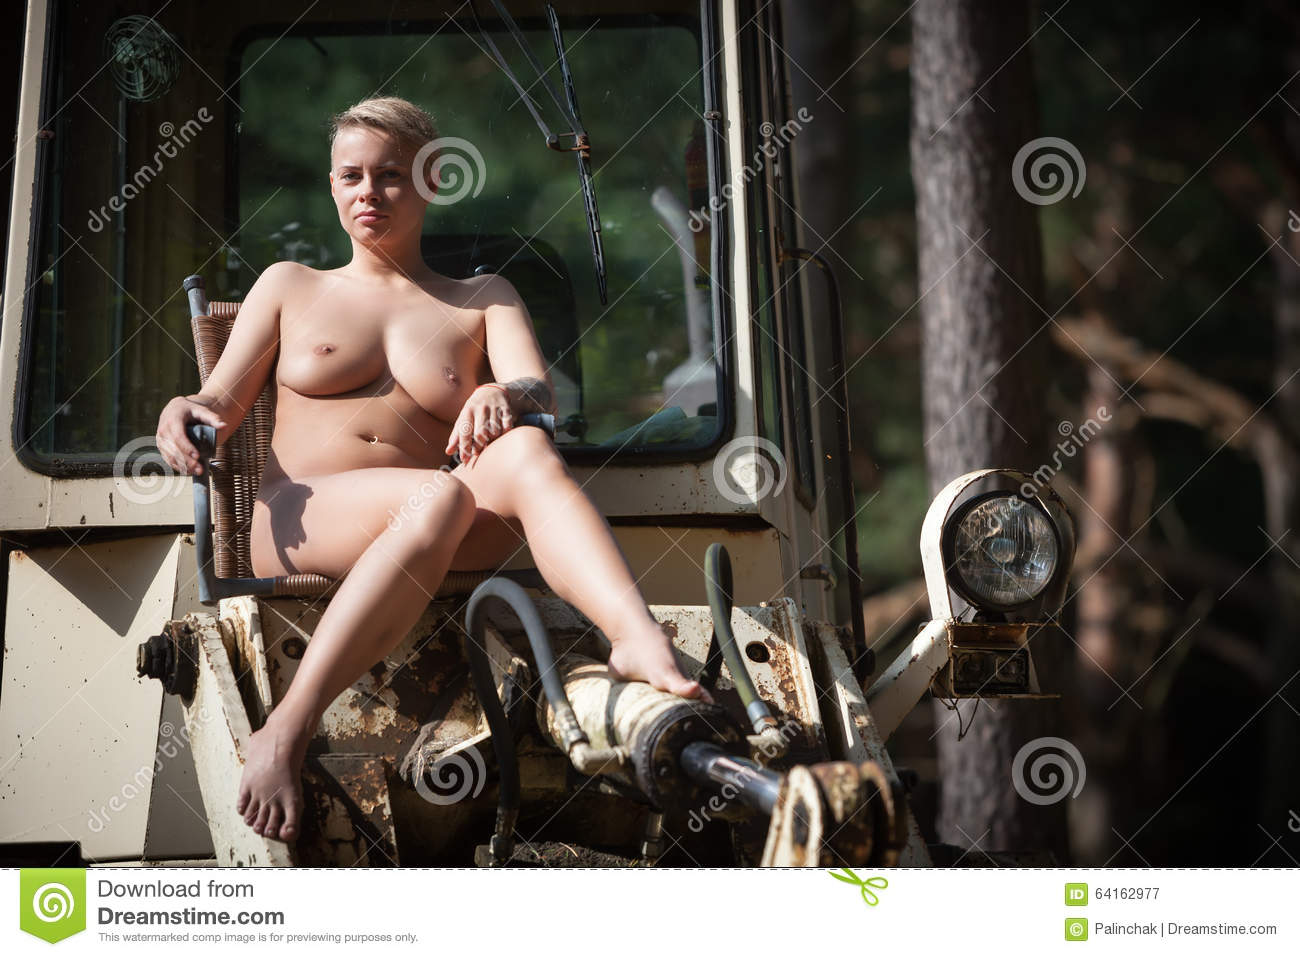 Something also posing naked on tractors pics were